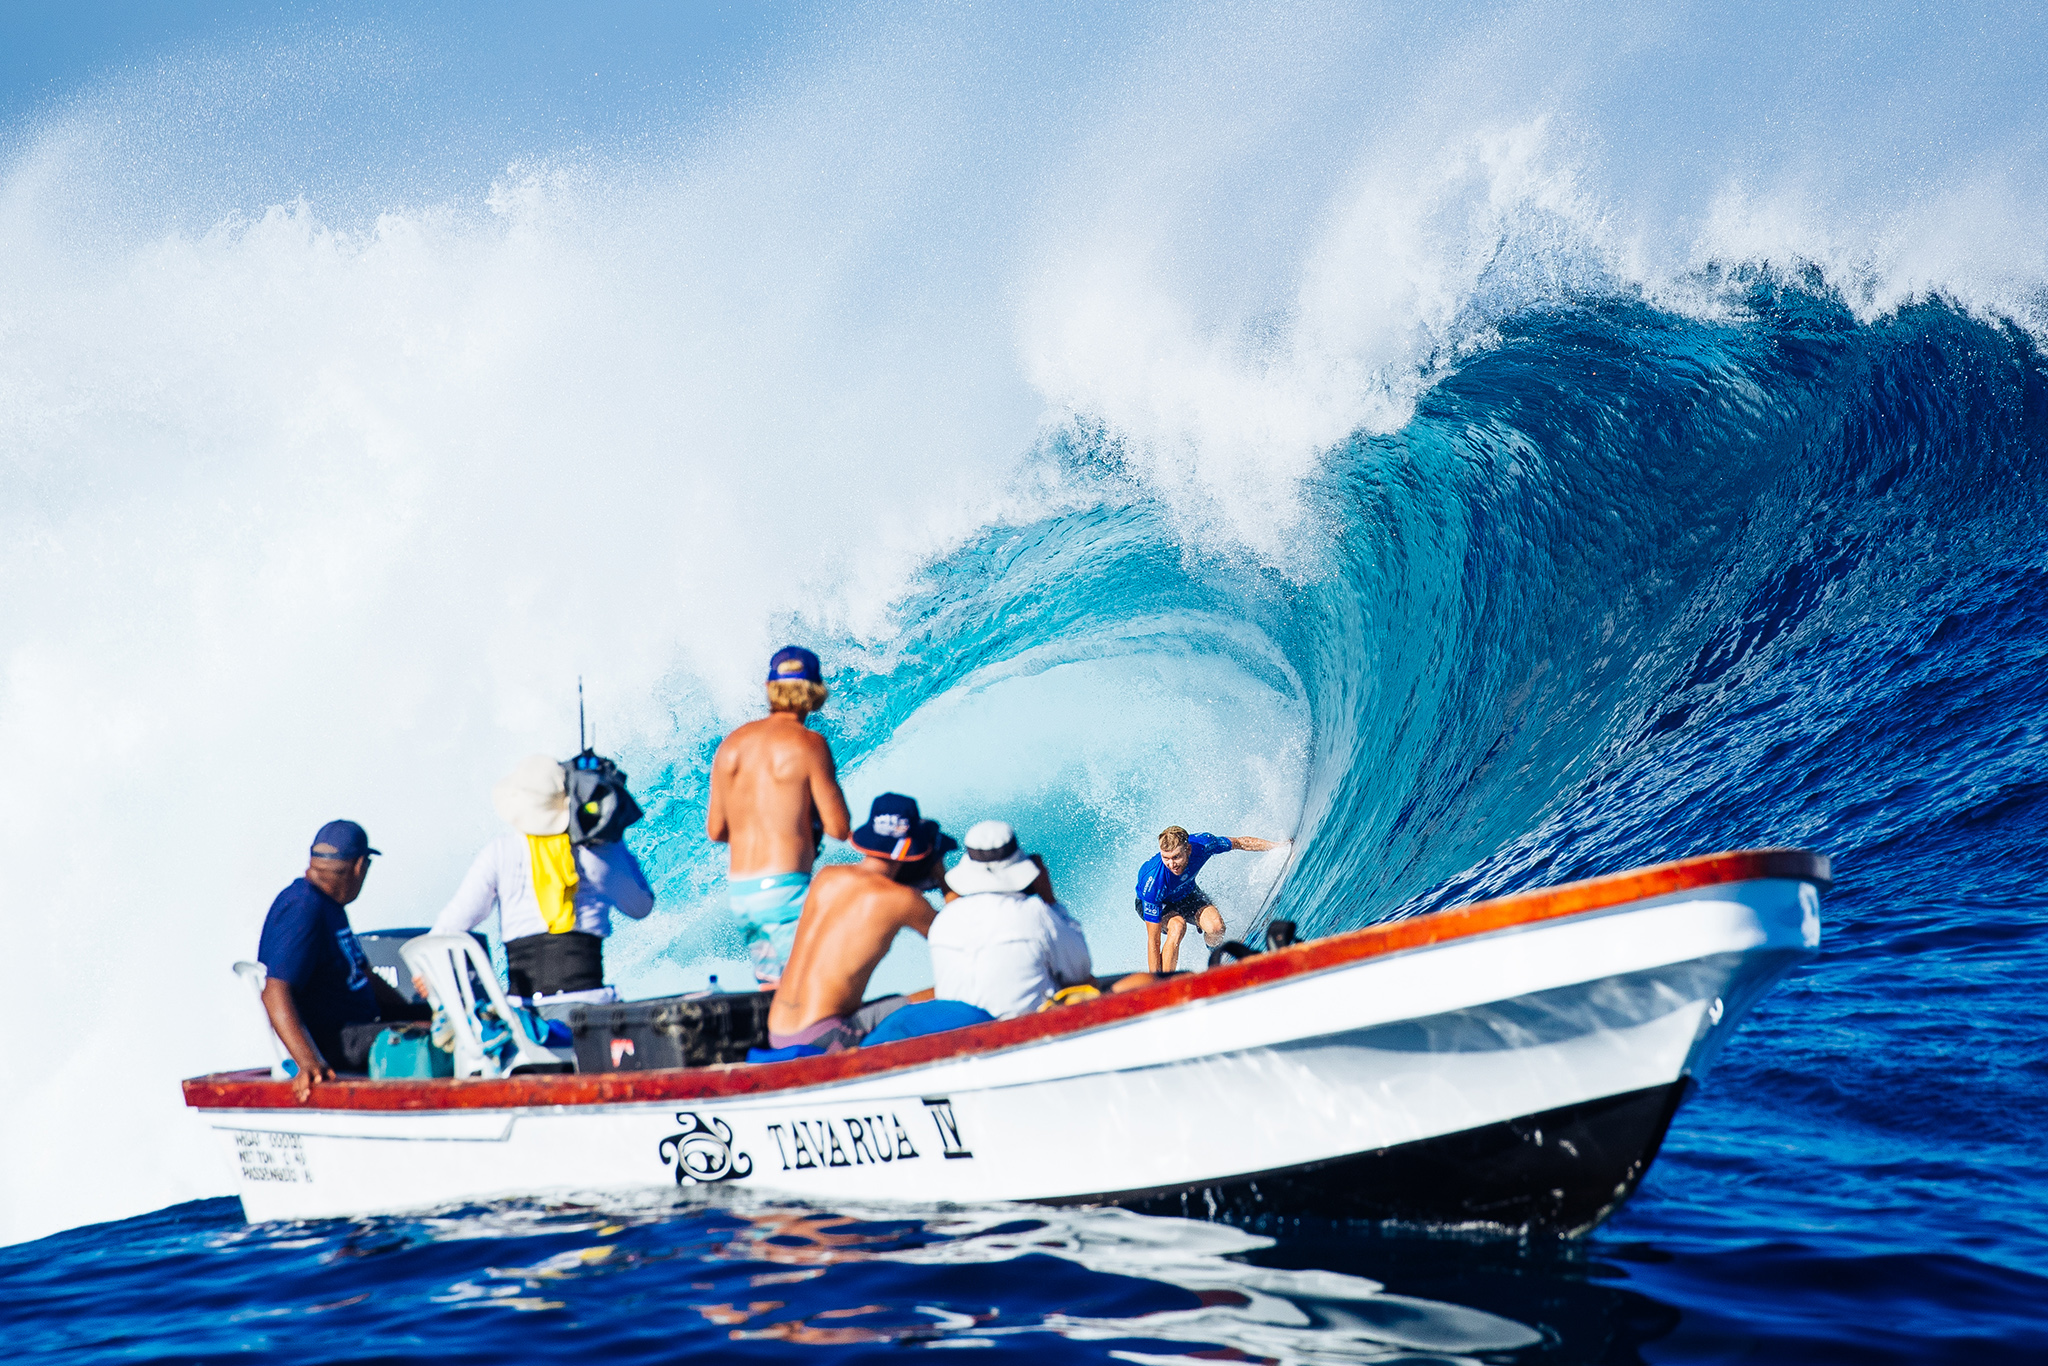 Adrian Buchan of Australia (pictured) riding a wave infront of the photographer's boat during the Quarterfinals of the Fiji Pro at Cloudbreak on Friday June 17, 2016. PHOTO: WSL/ Sloane SOCIAL: @edsloanephoto @wsl This image is the copyright of  the World Surf League and is provided royalty free for editorial use only, in all media now known or hereafter created. No commercial rights granted. Sale or license of the images is prohibited. This image is a factually accurate rendering of what it depicts and has not been modified or augmented except for standard cropping and toning. ALL RIGHTS RESERVED.